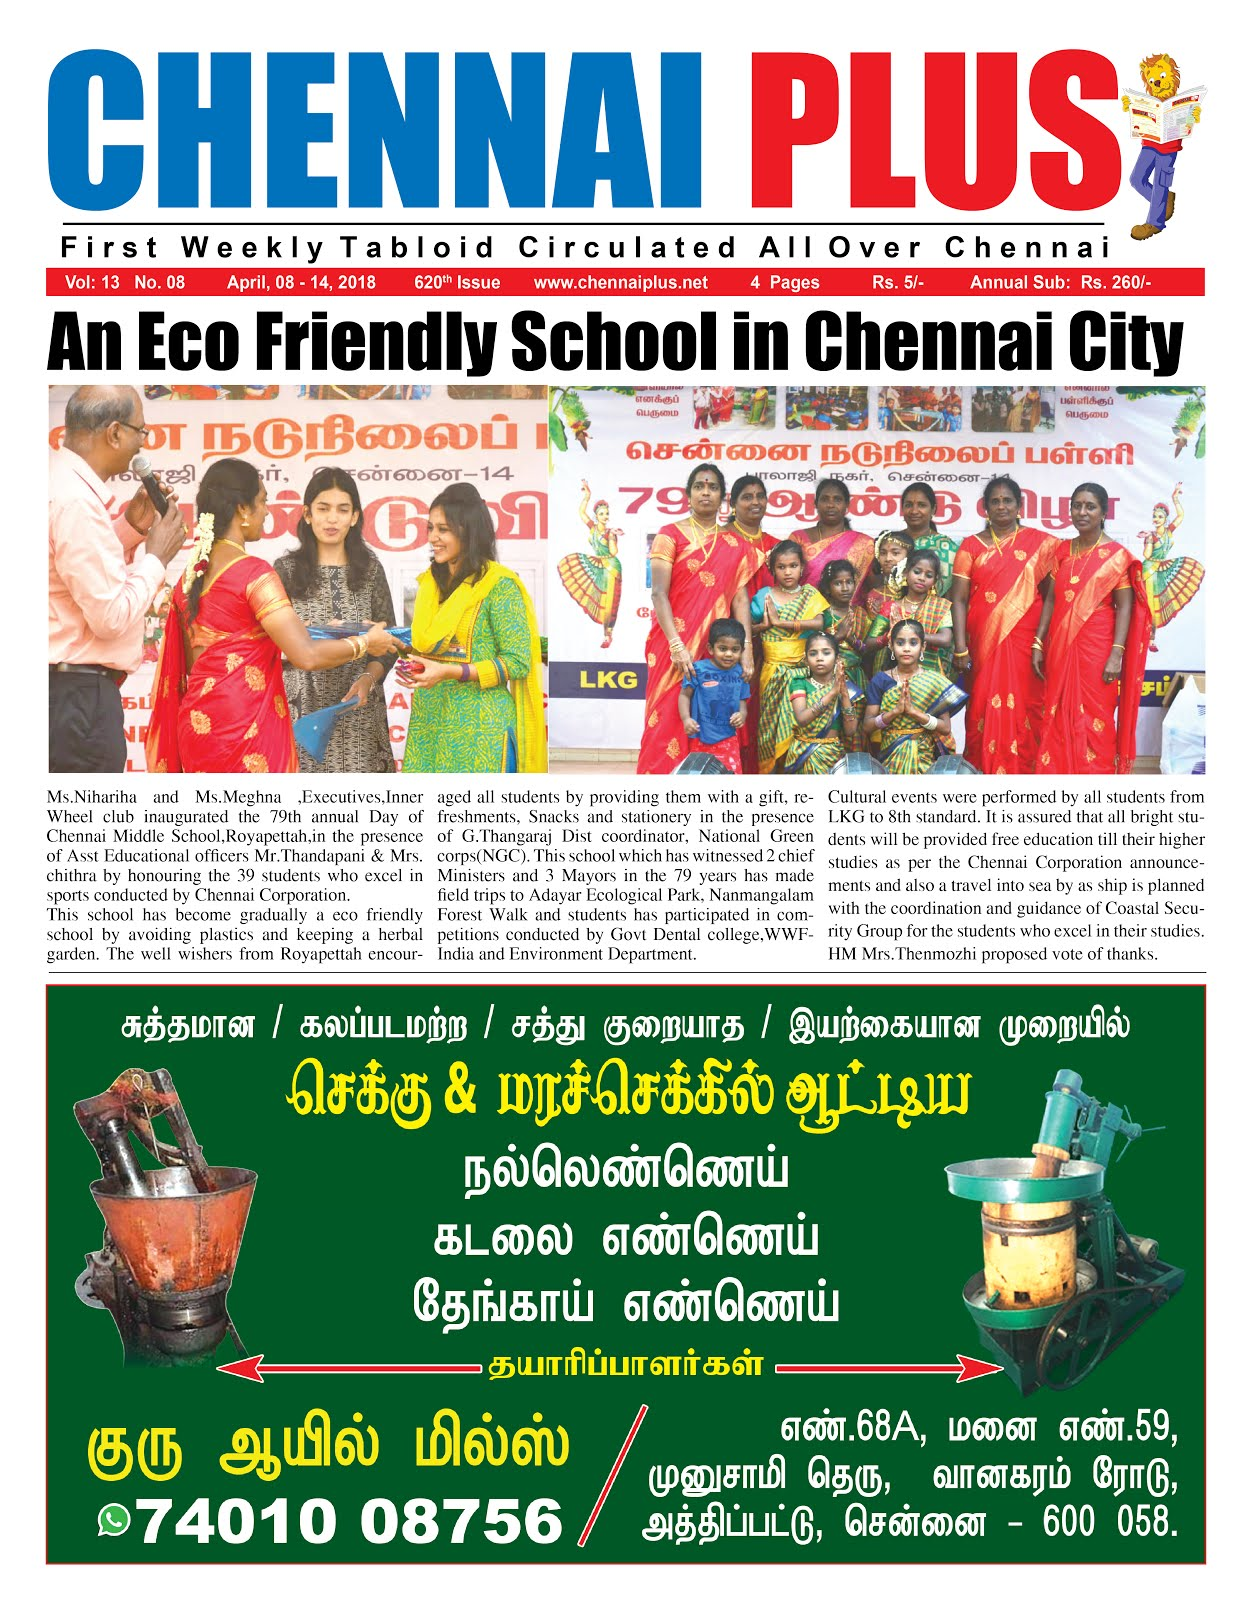 Chennai Plus_08.04.2018_Issue